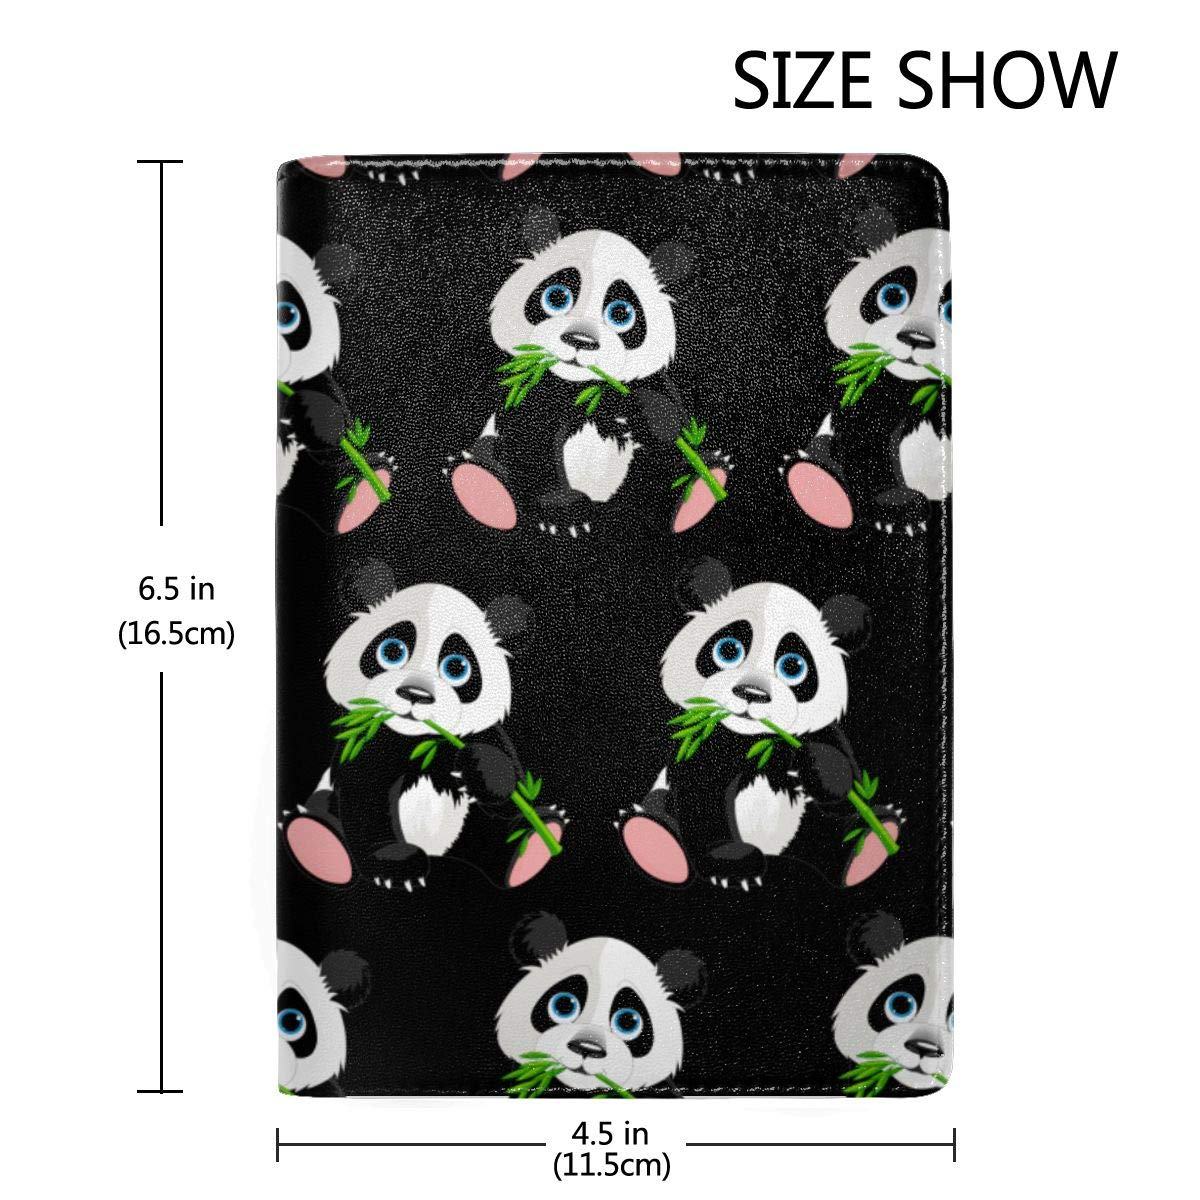 Panda Eating Bamboo Fashion Leather Passport Holder Cover Case Travel Wallet 6.5 In